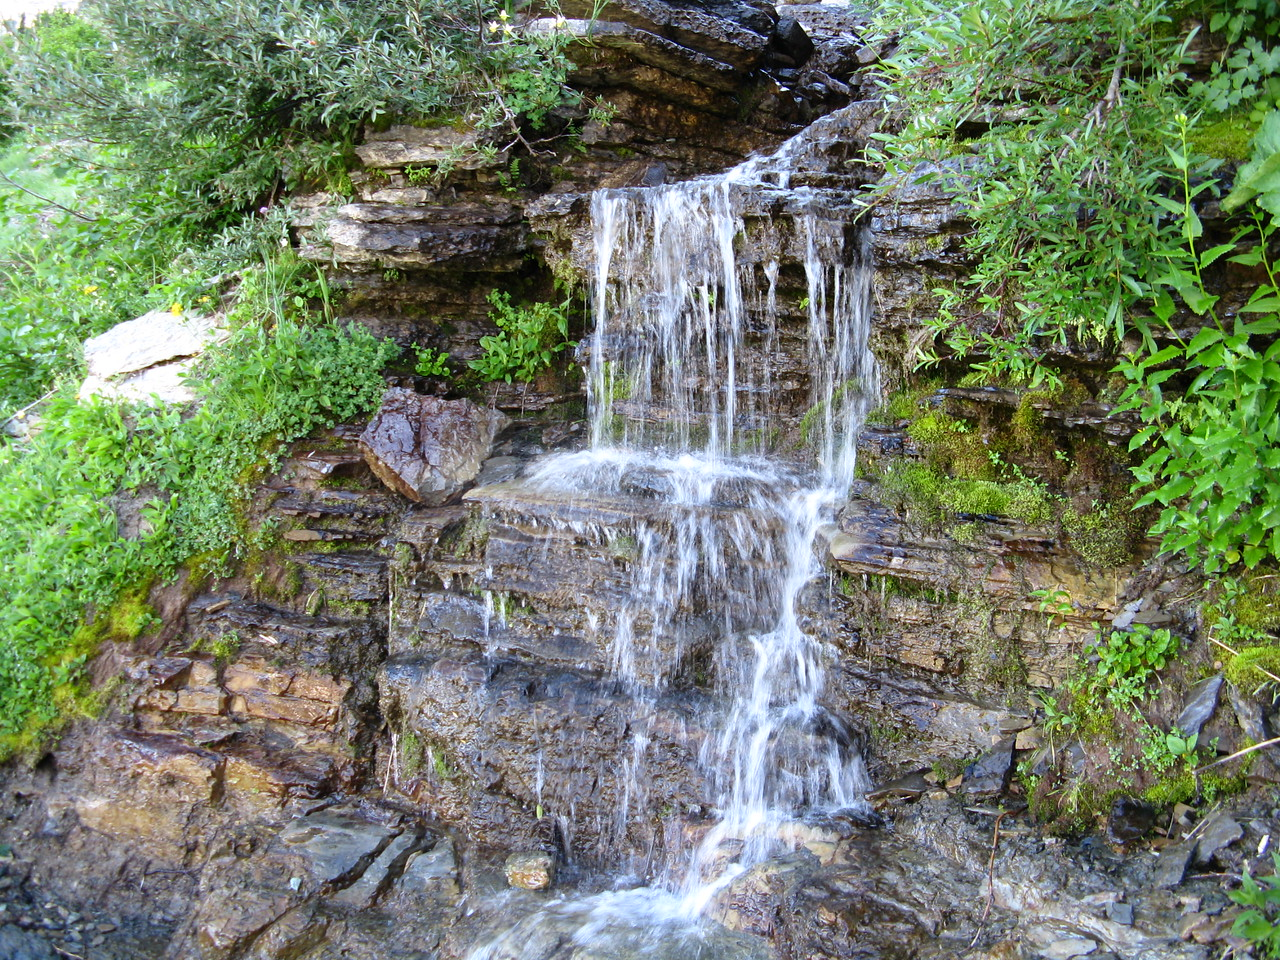 A waterfall next to the trail.